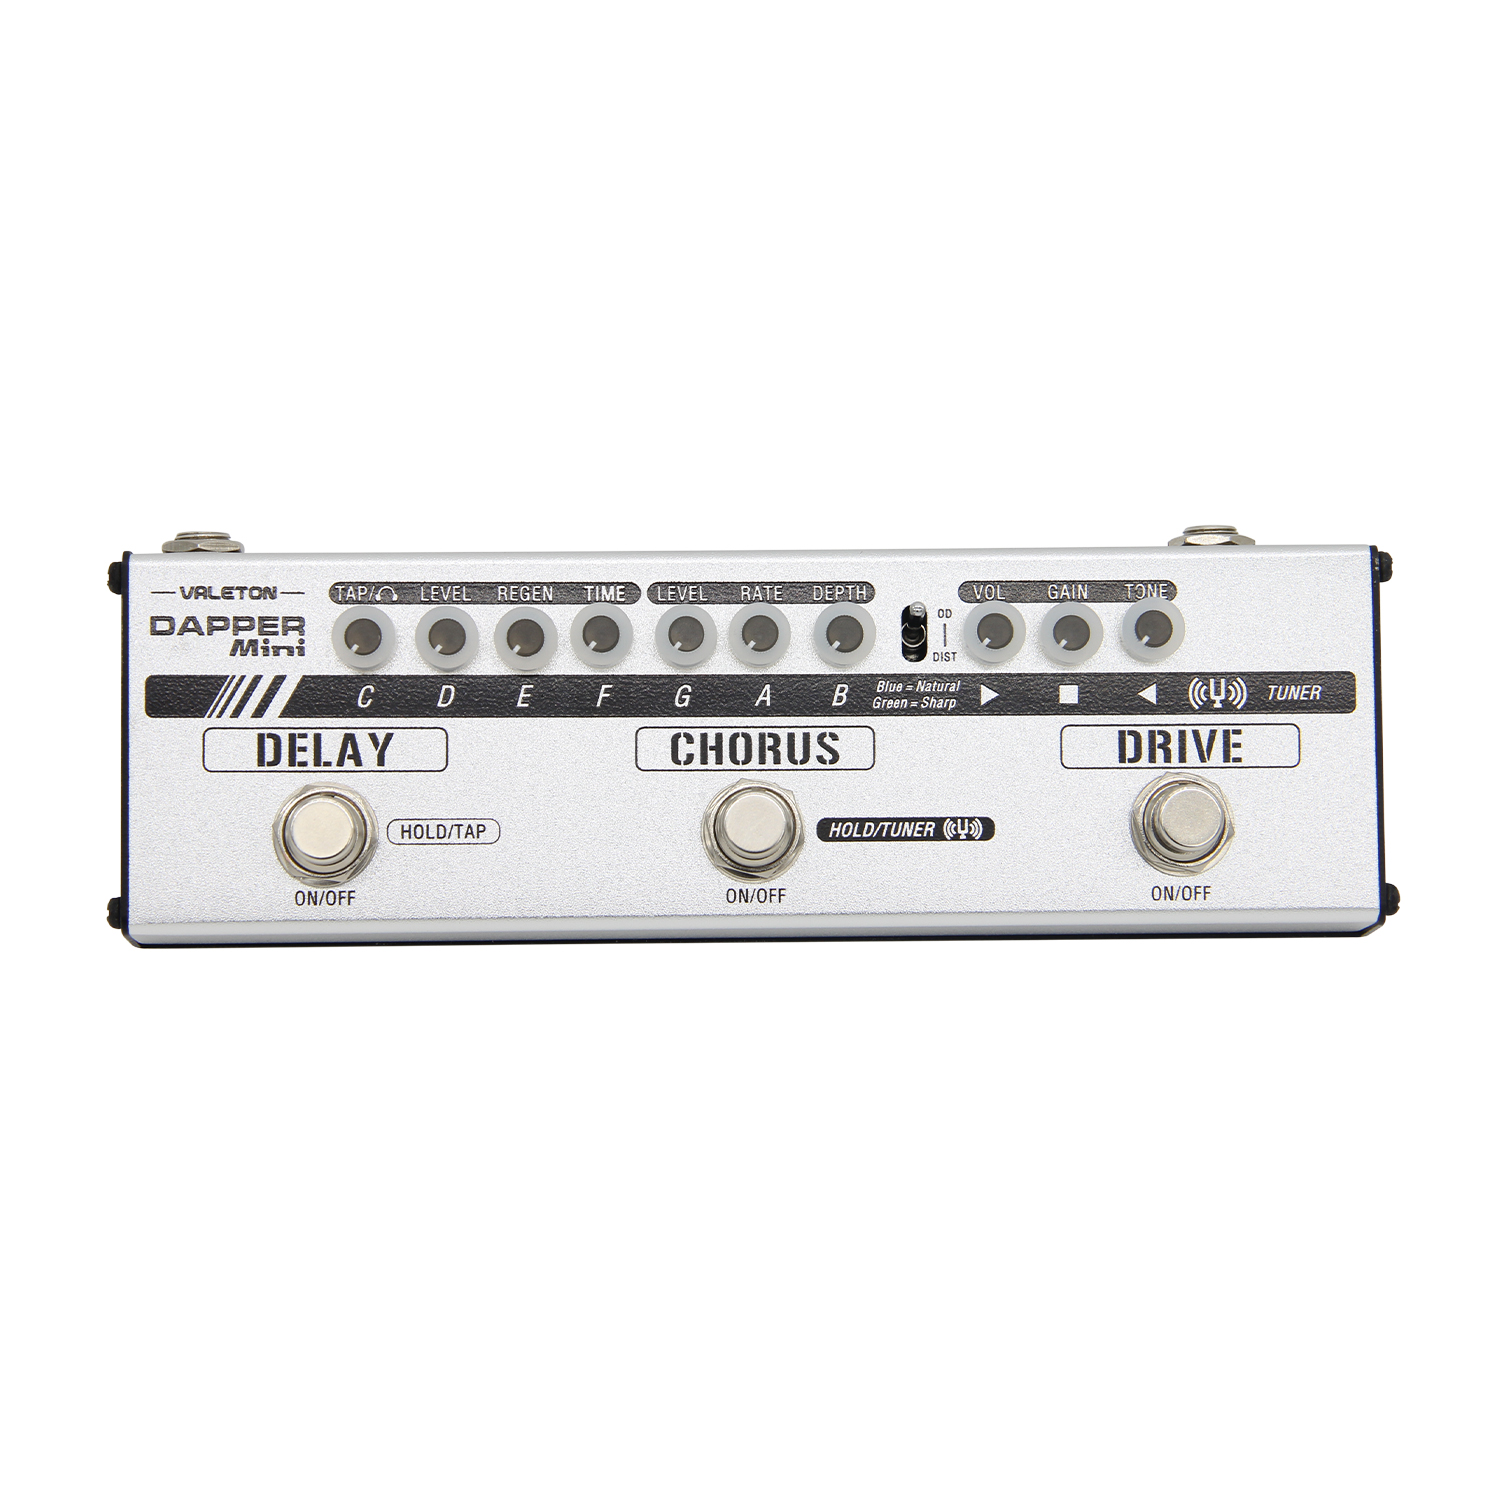 Valeton MES-1 Dapper Mini Guitar Effect Pedal All In One Effects Strip  with Earphones Jack Tuner Drive Chorus Delay Effects mooer ensemble queen bass chorus effect pedal mini guitar effects true bypass with free connector and footswitch topper